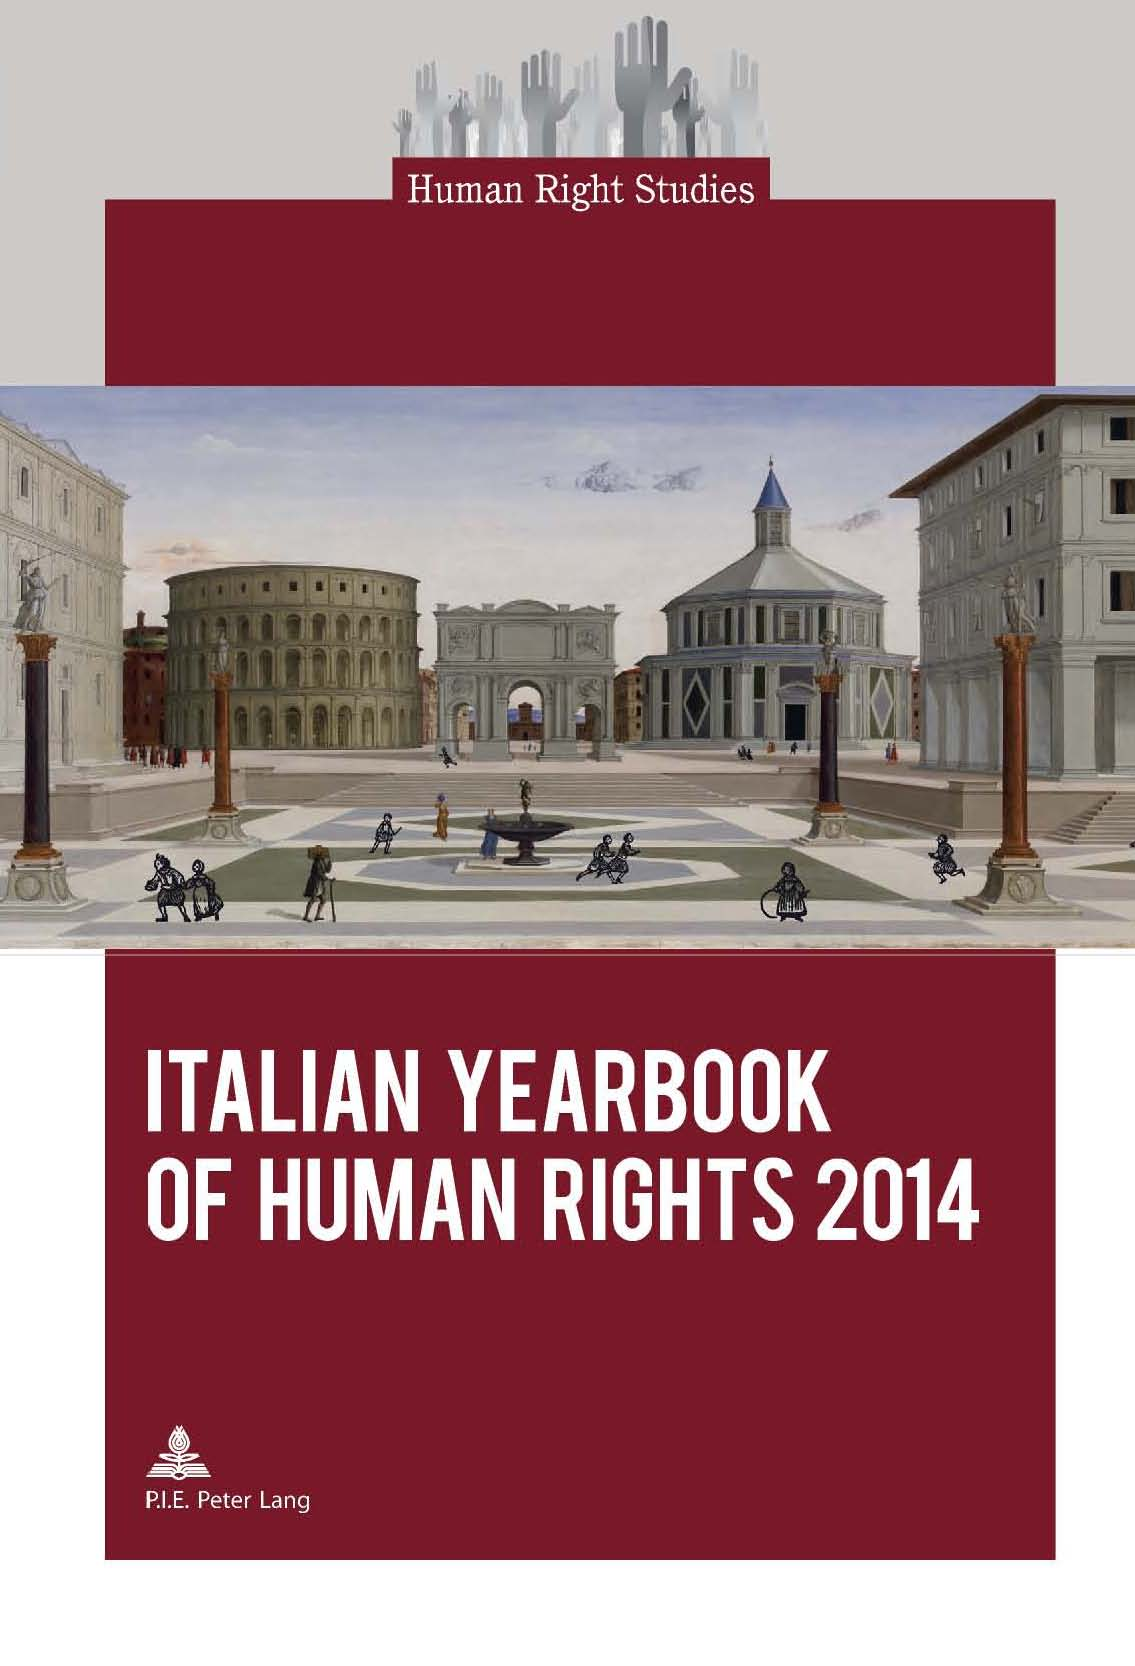 Copertina dello Italian Yearbook of Human Rights 2014,  Brussels, Peter Lang, 2014